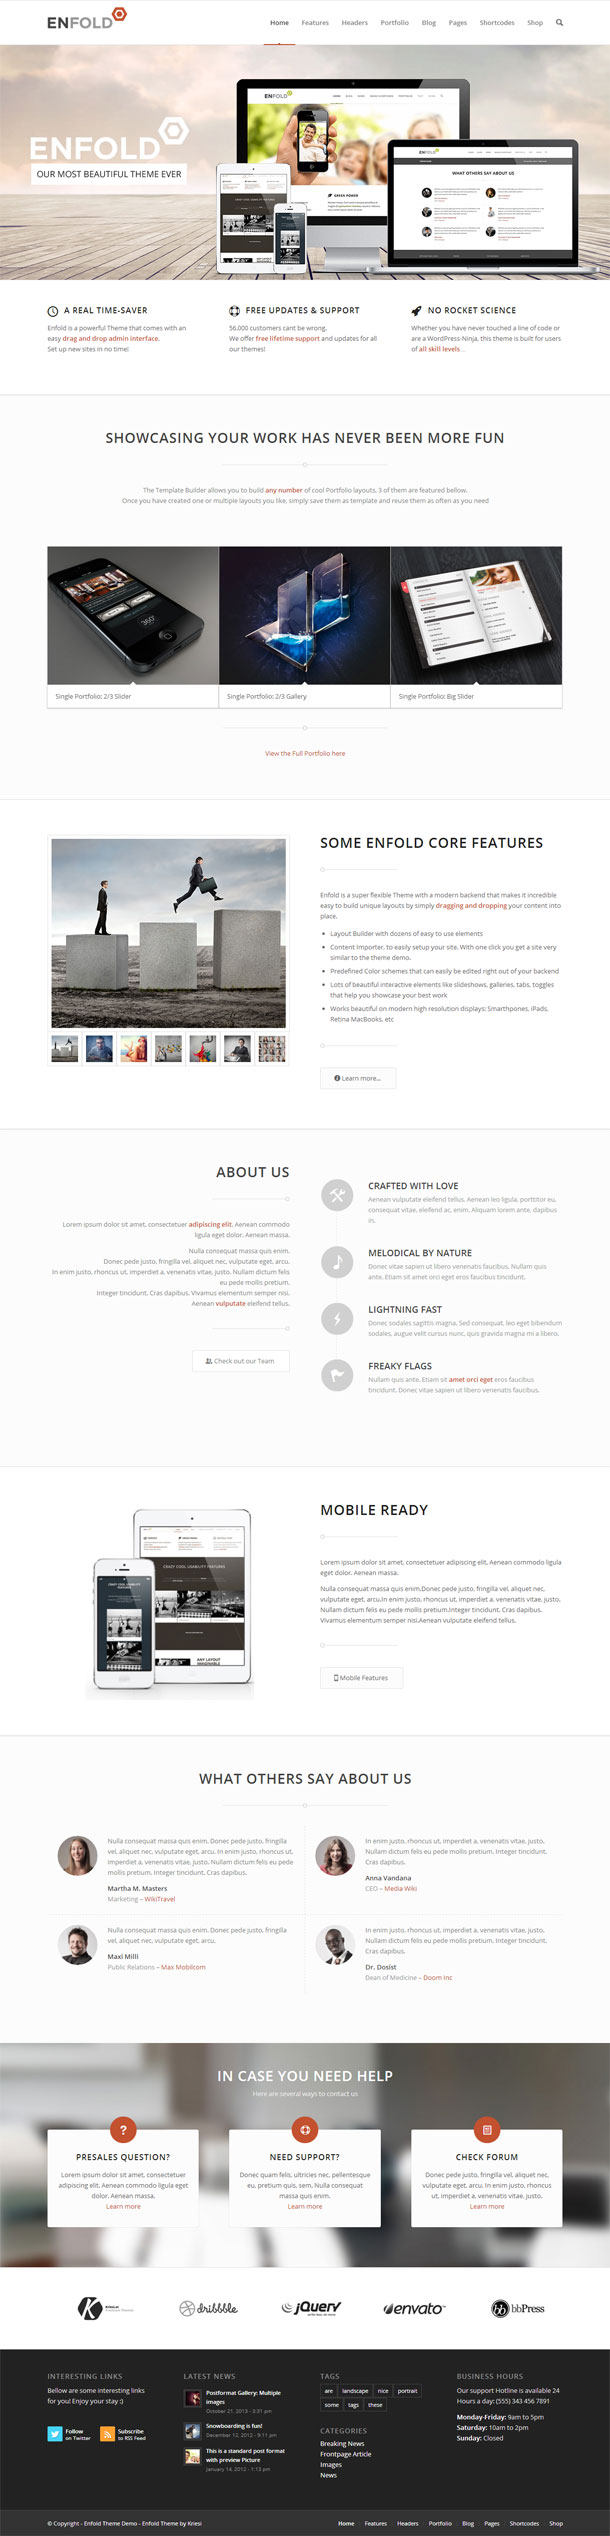 Enfold Best Responsive Theme Image